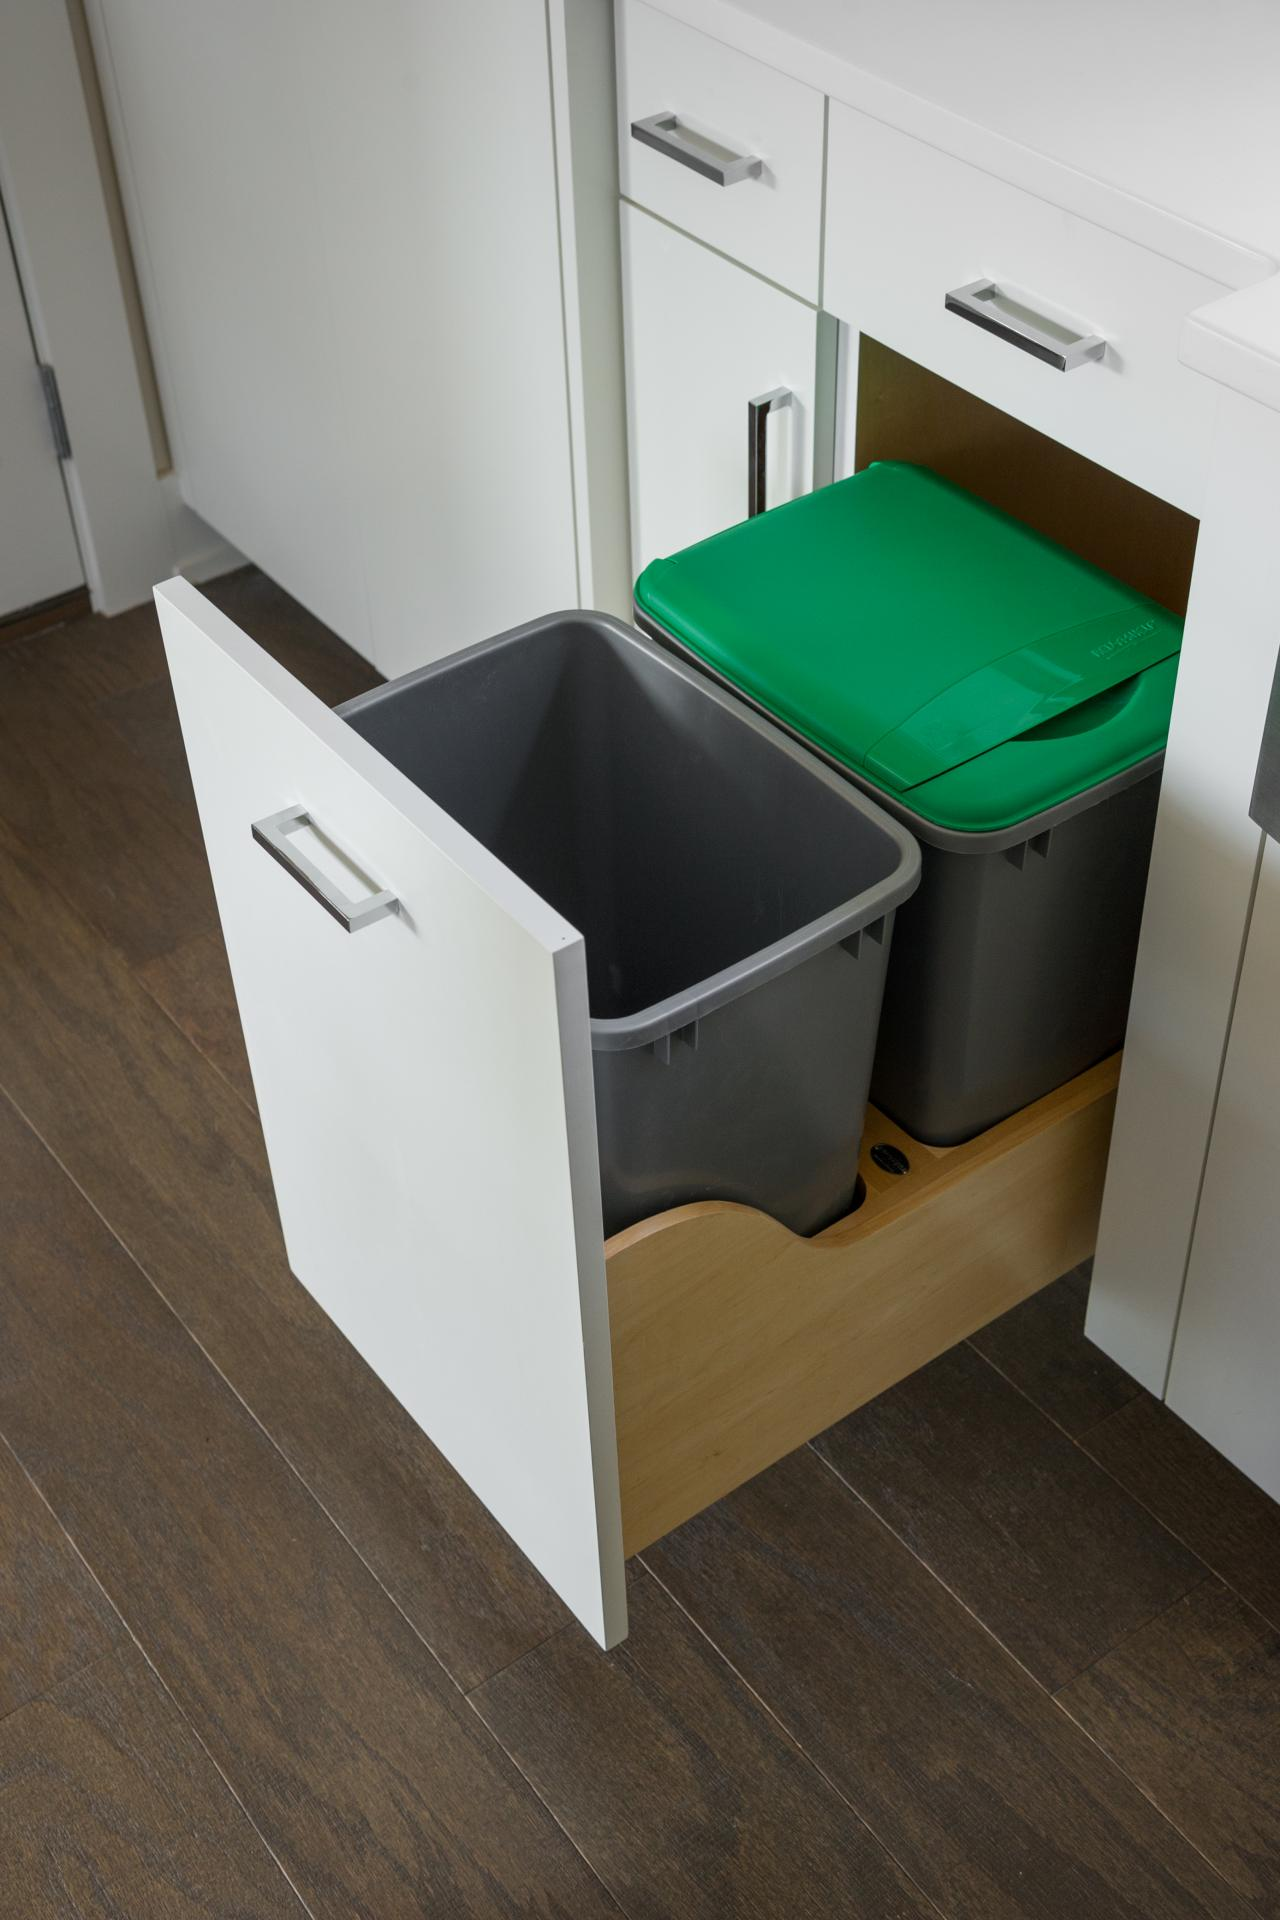 Concealed Recycling Bin in Cabinet | HGTV